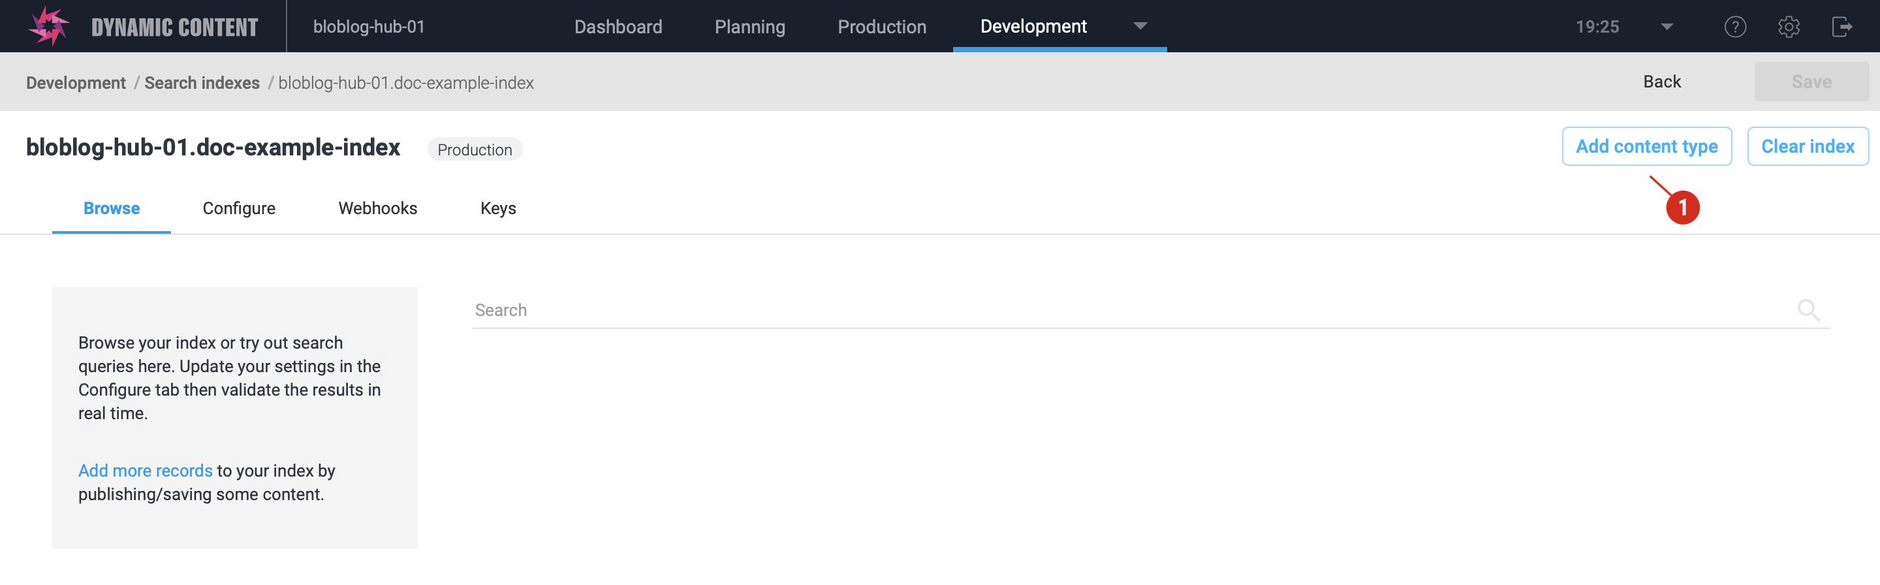 Once an index is set up, you can add additional content types to it